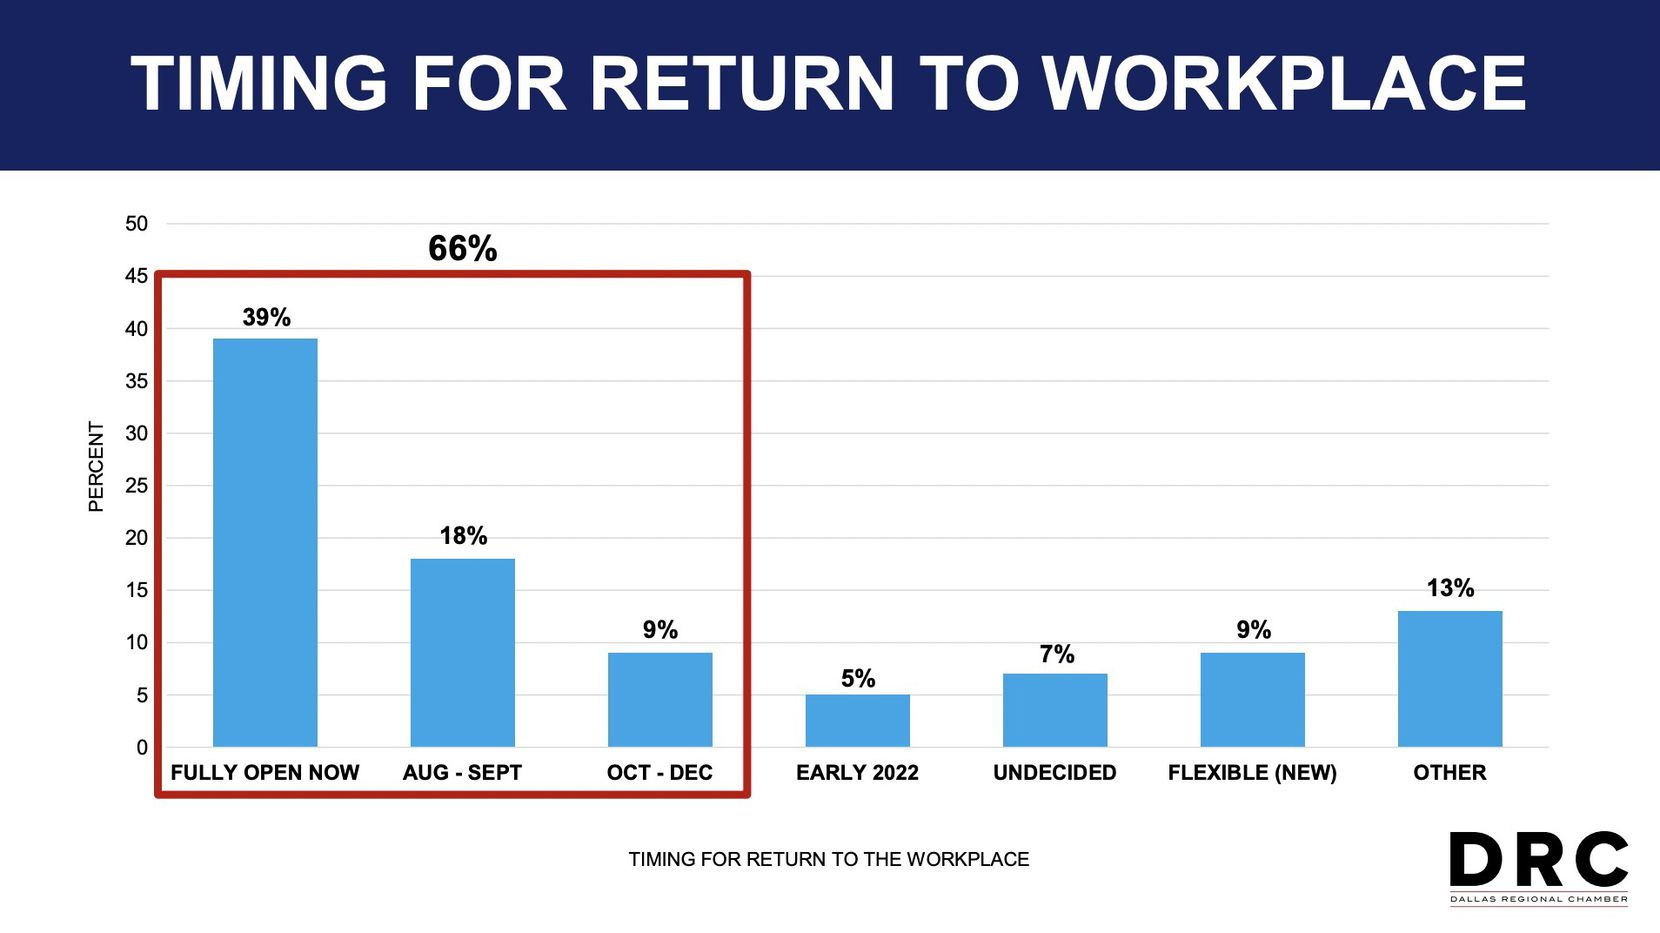 Sixty-six percent of DRC companies are fully back in their offices or plan to be by the end of this year.